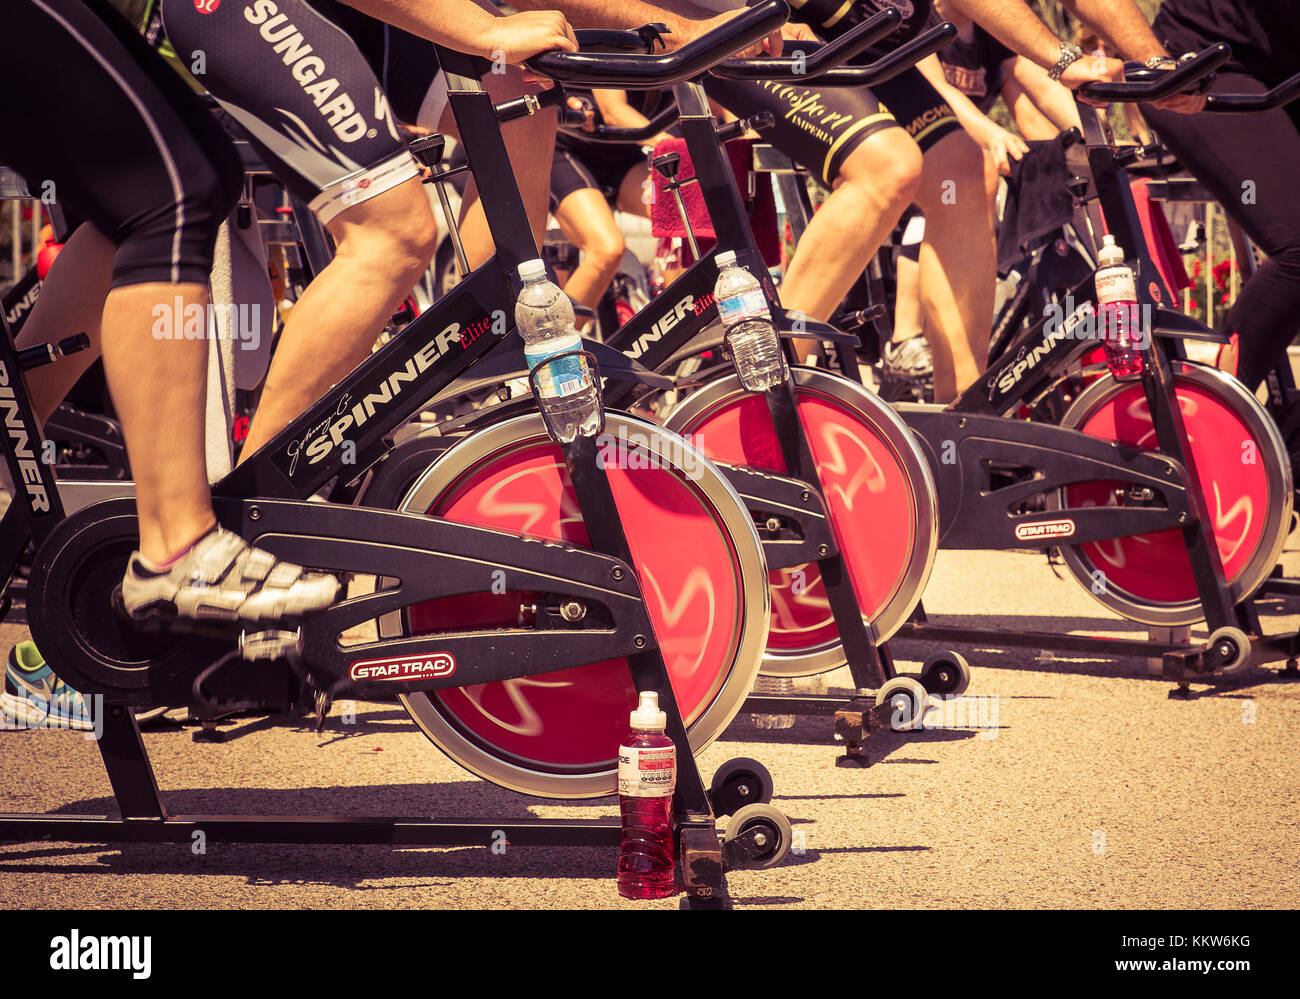 Legs moving during a workout of spinning. ----- Imperia, IM, Italy - May 18, 2014: People perform a spinning session - Stock Image